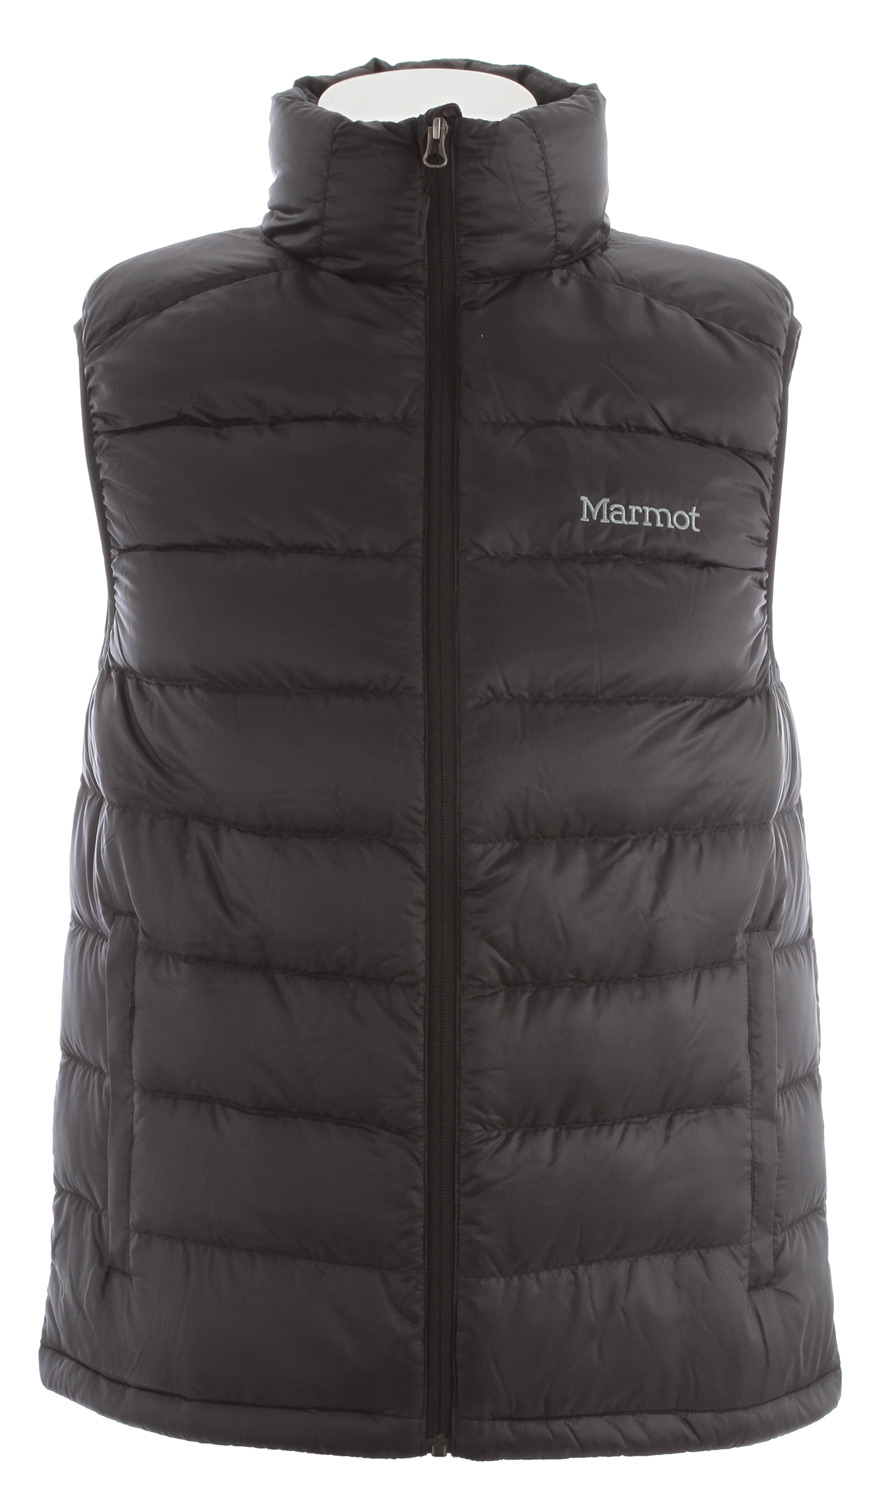 When the thermometer plunges, reach for this ultra light vest, packed with high-quality 800 fill power goose down. It's a great way to stock up on warmth without bulking up your pack, since it fits into its very own pocket! Features include an elastic draw cord hem and cozy hand warmer pockets.Key Features of the Marmot Zeus Vest: Ultralight Down-proof Fabric 800 Fill Power Goose Down Zippered Hand Pockets Elastic Draw Cord Hem Packs into Pocket - $105.95